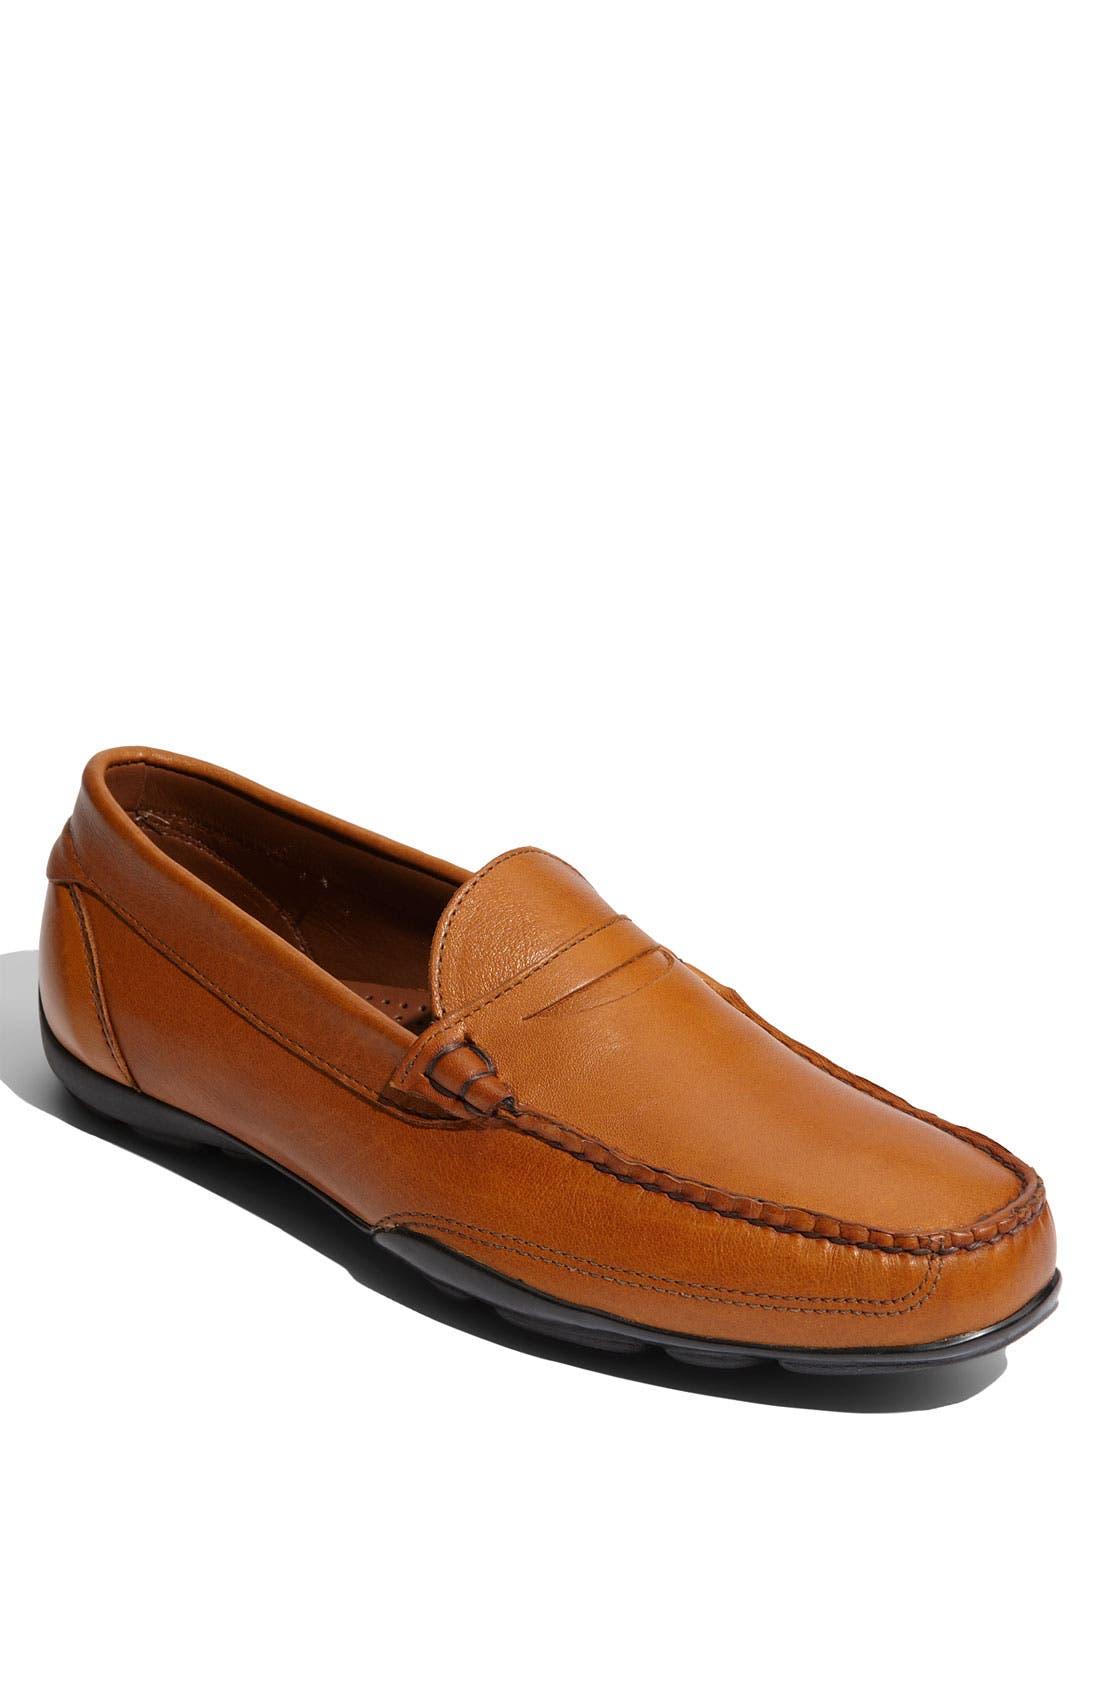 Alternate Image 1 Selected - ALLEN EDMONDS ROUTE 100 PENNY LOAFER